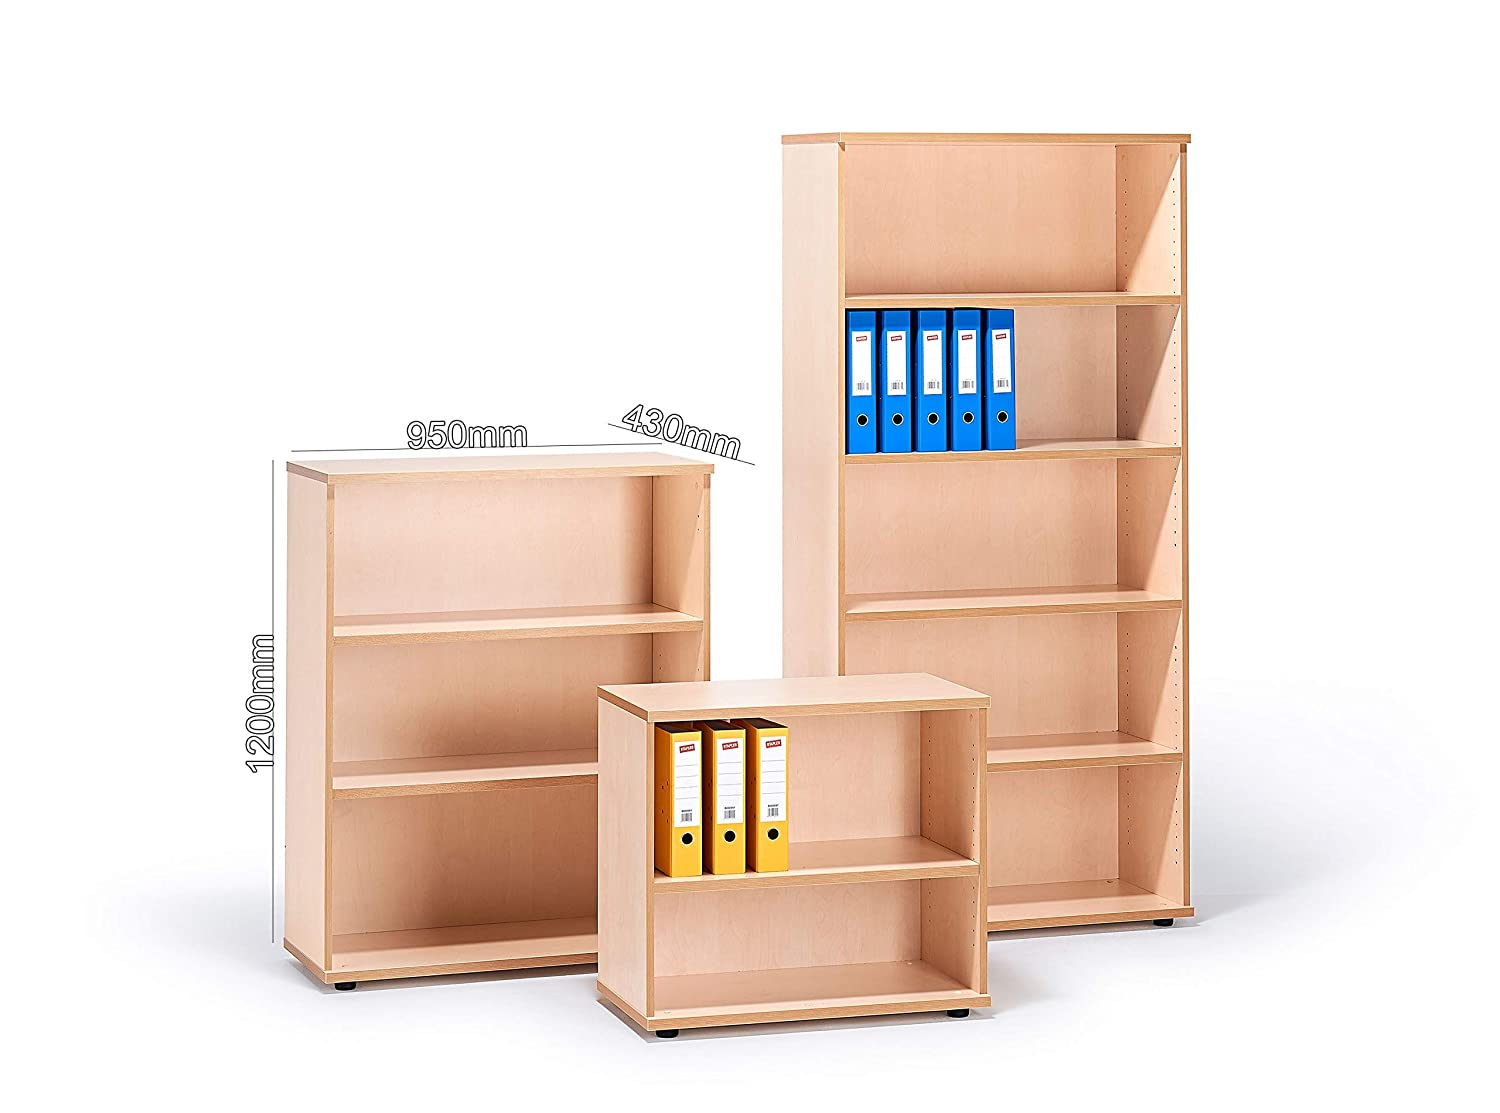 Maple H1200mm x W950mm x D430mm Maple Office Bookcases